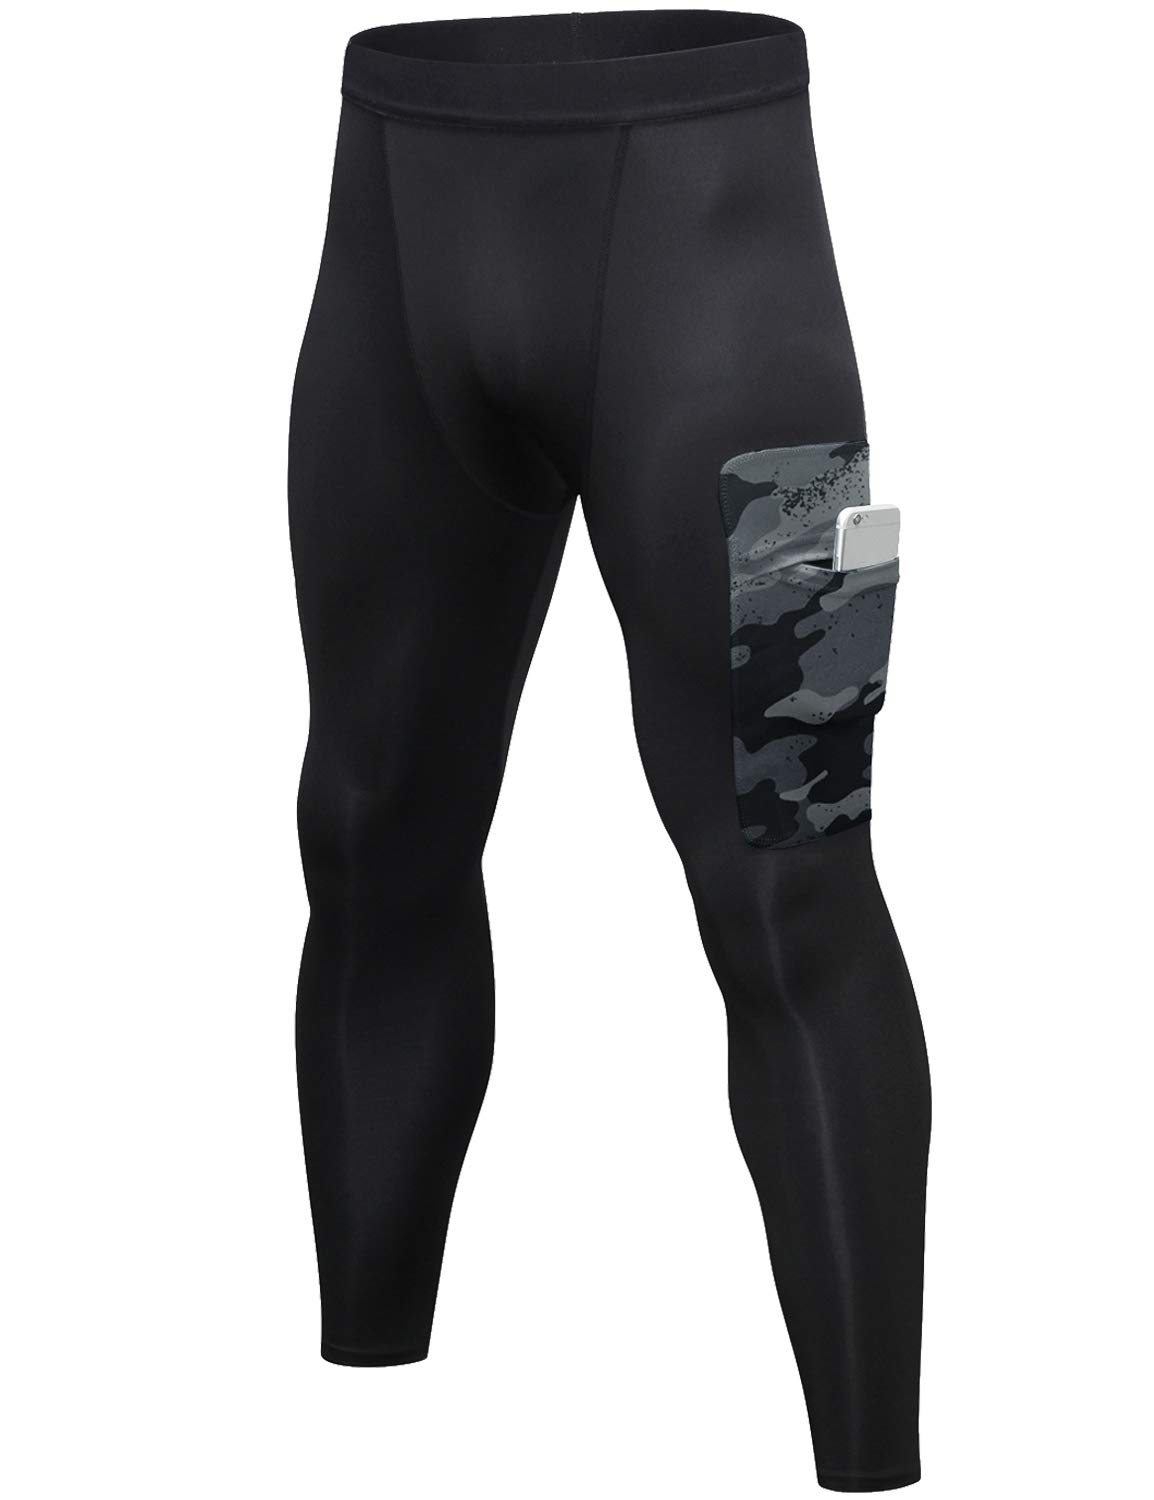 Lavento Men's Compression Pants Baselayer Cool Dry Pocket Running Ankle Leggings Active Tights (1 Pack-3920 Black/Gray,Large) by Lavento